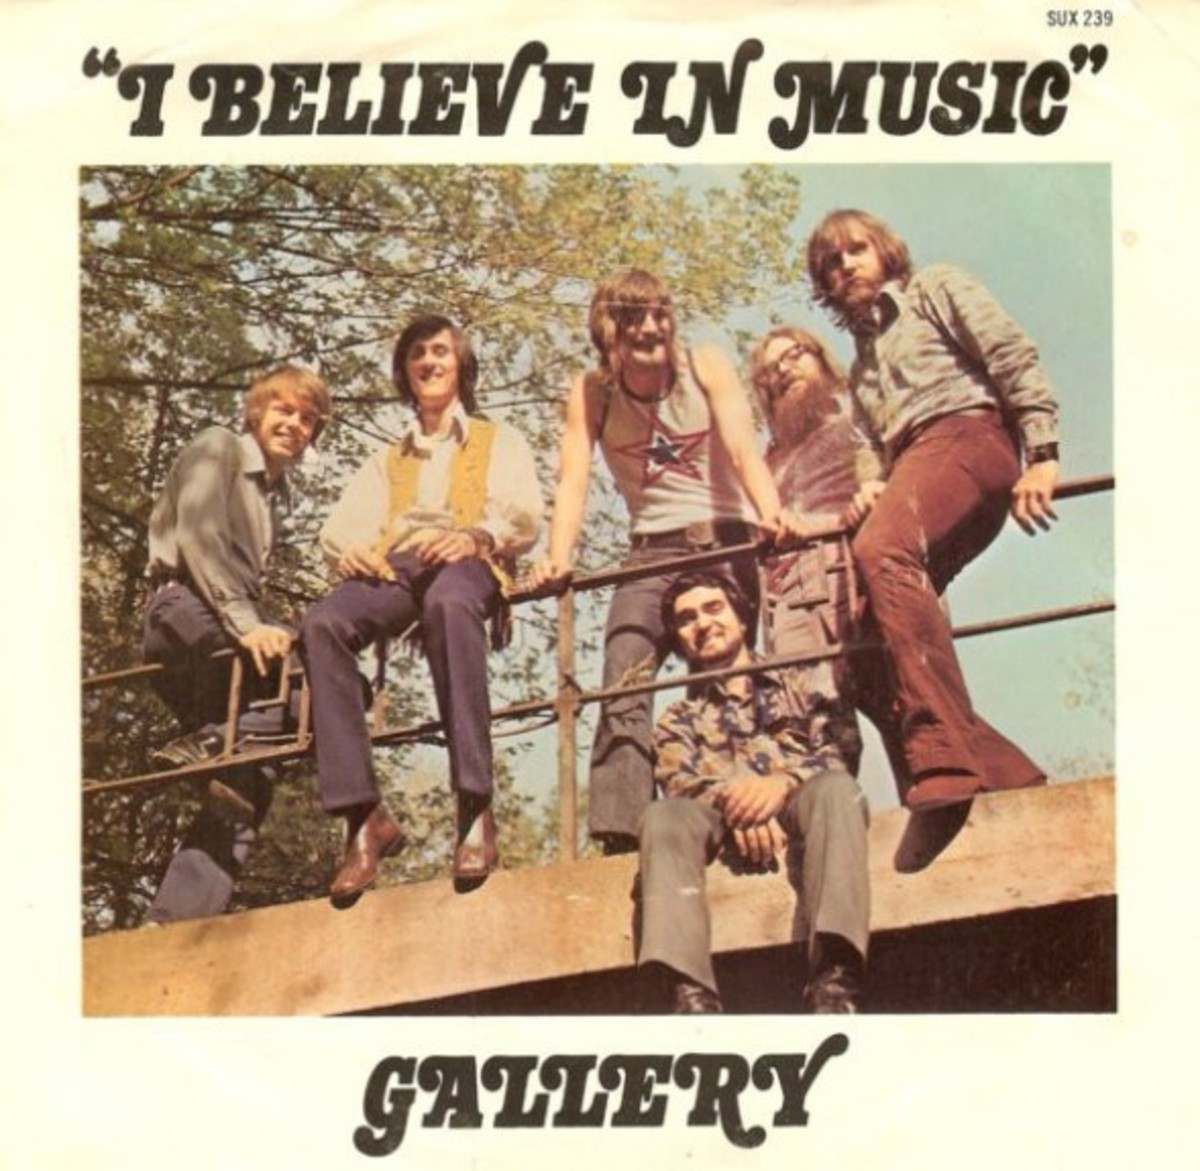 45 picture sleeve photo, Jim Gold second from the left